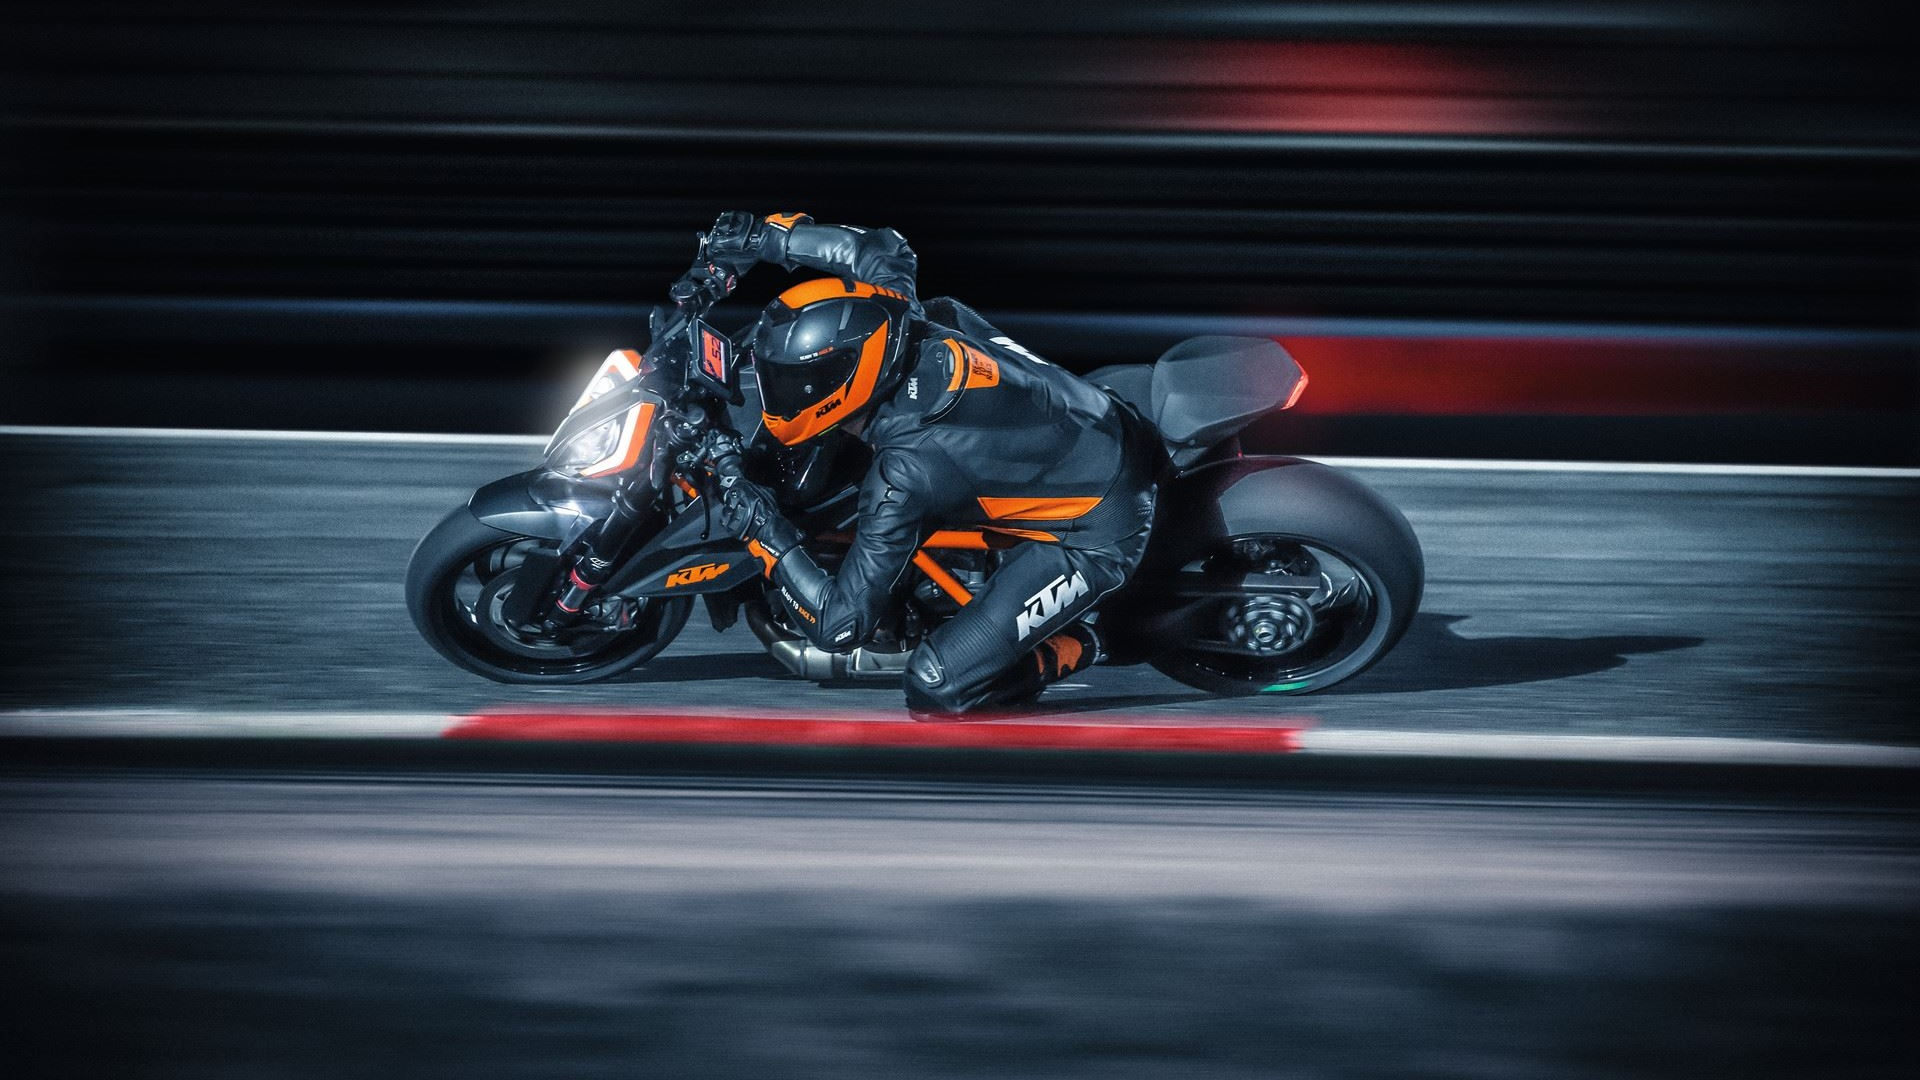 2020 KTM 1290 SUPER DUKE R wallpaper